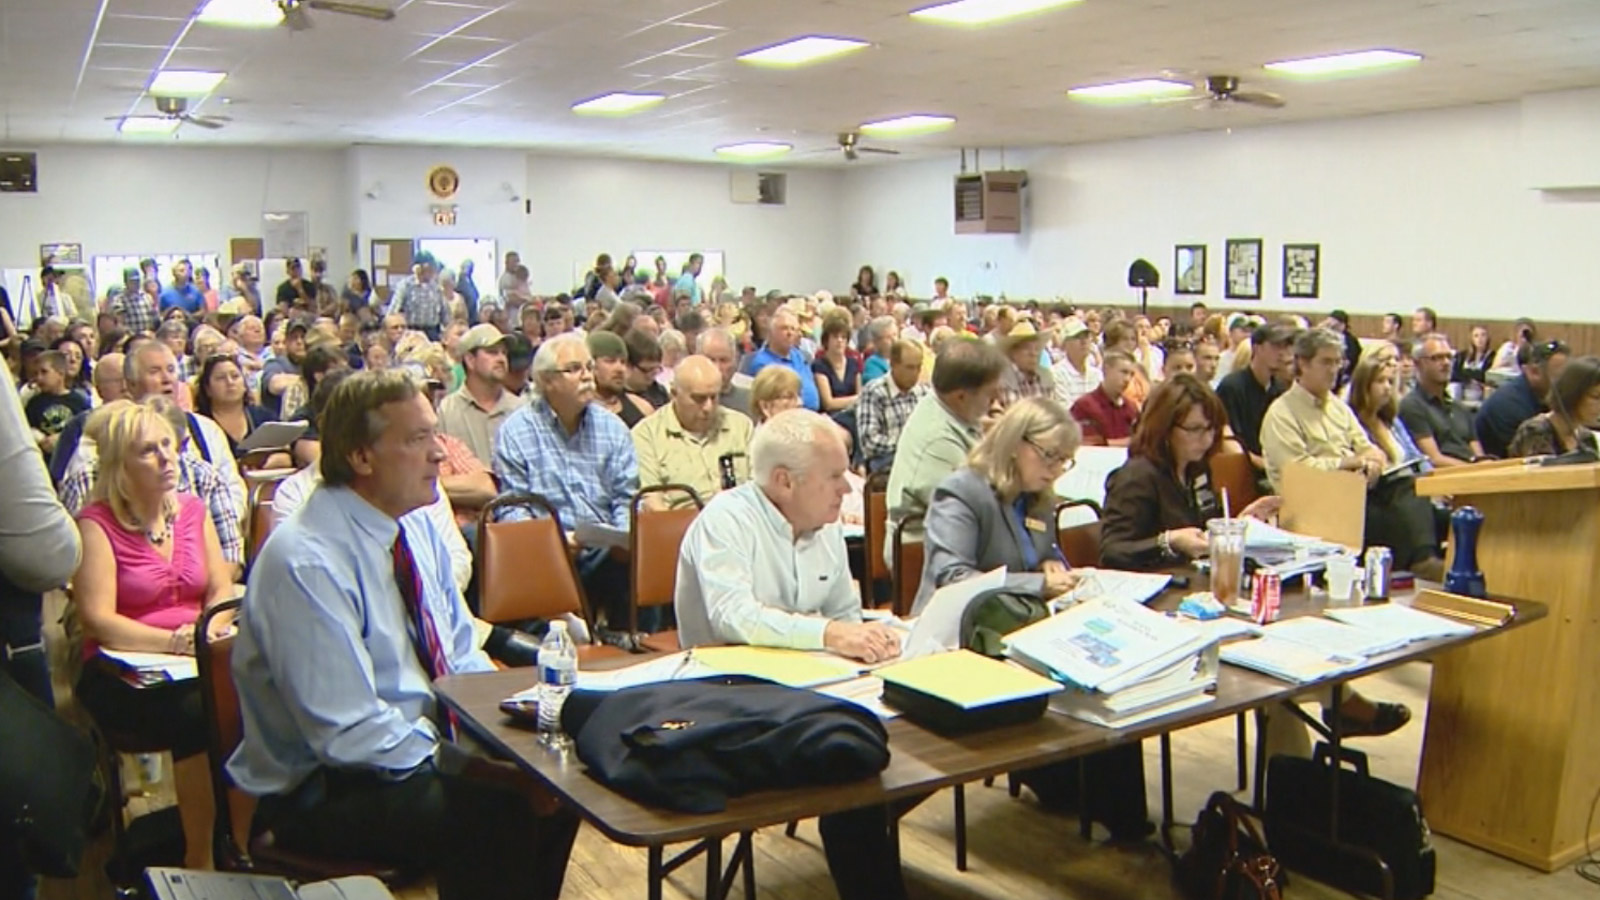 Hundreds packed a meeting to discuss Riot Fest  near Byers (credit: CBS)